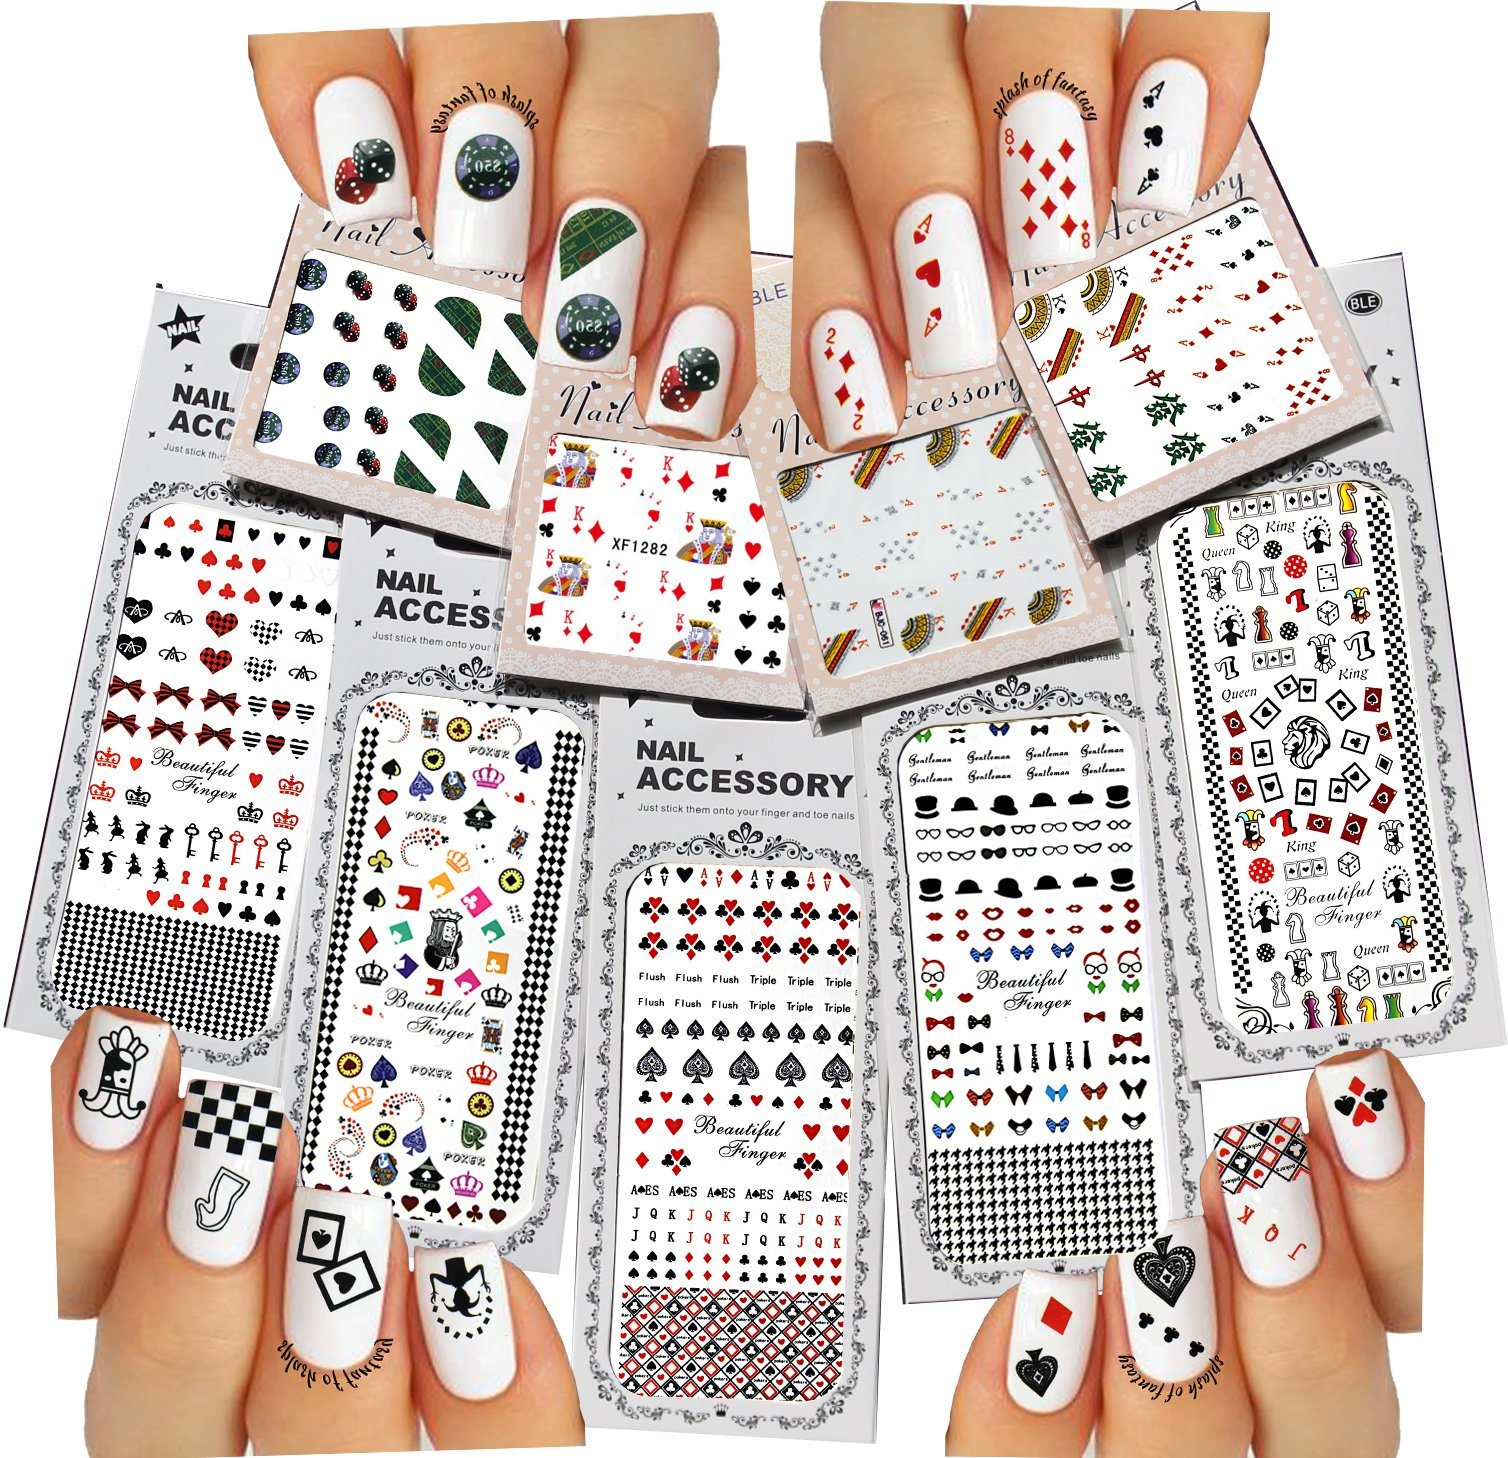 Nail art water slide tattoos ♥ fun designs playing cards etc ♥ for